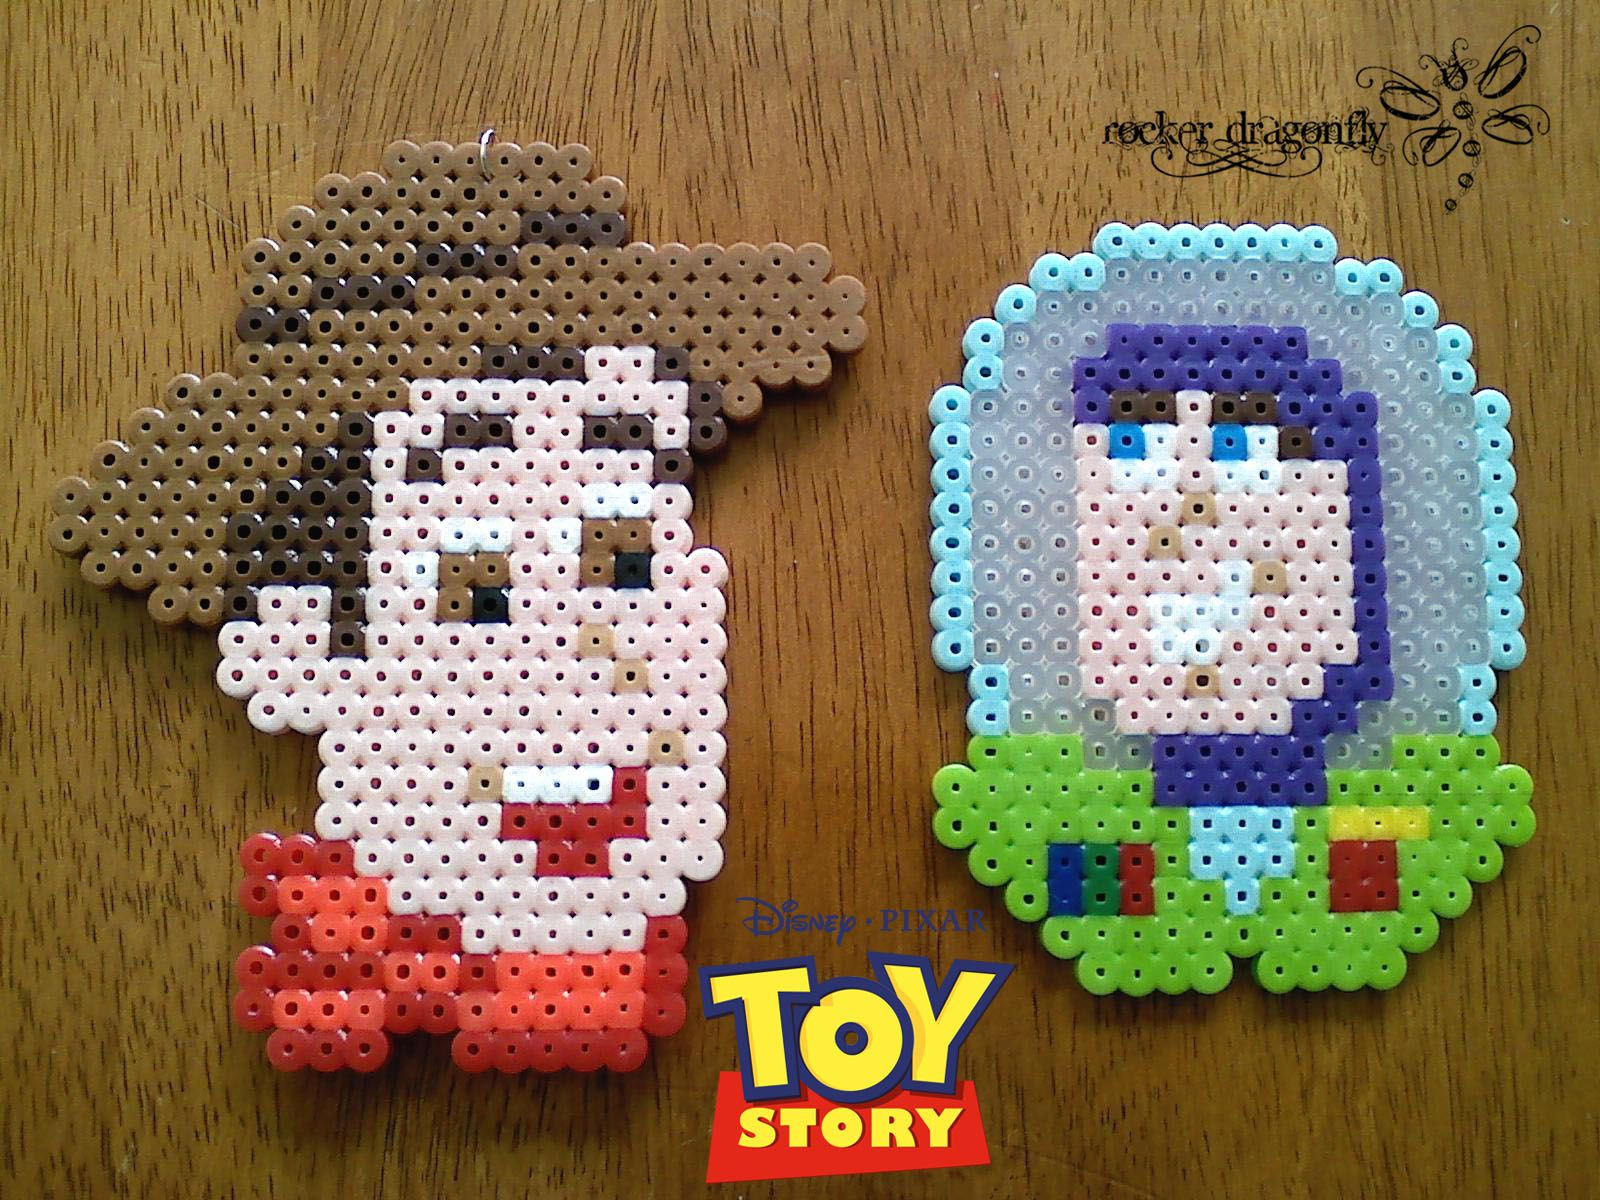 From Toy Story: Woody and Buzz !!! Perler Bead Creation by: RockerDragonfly